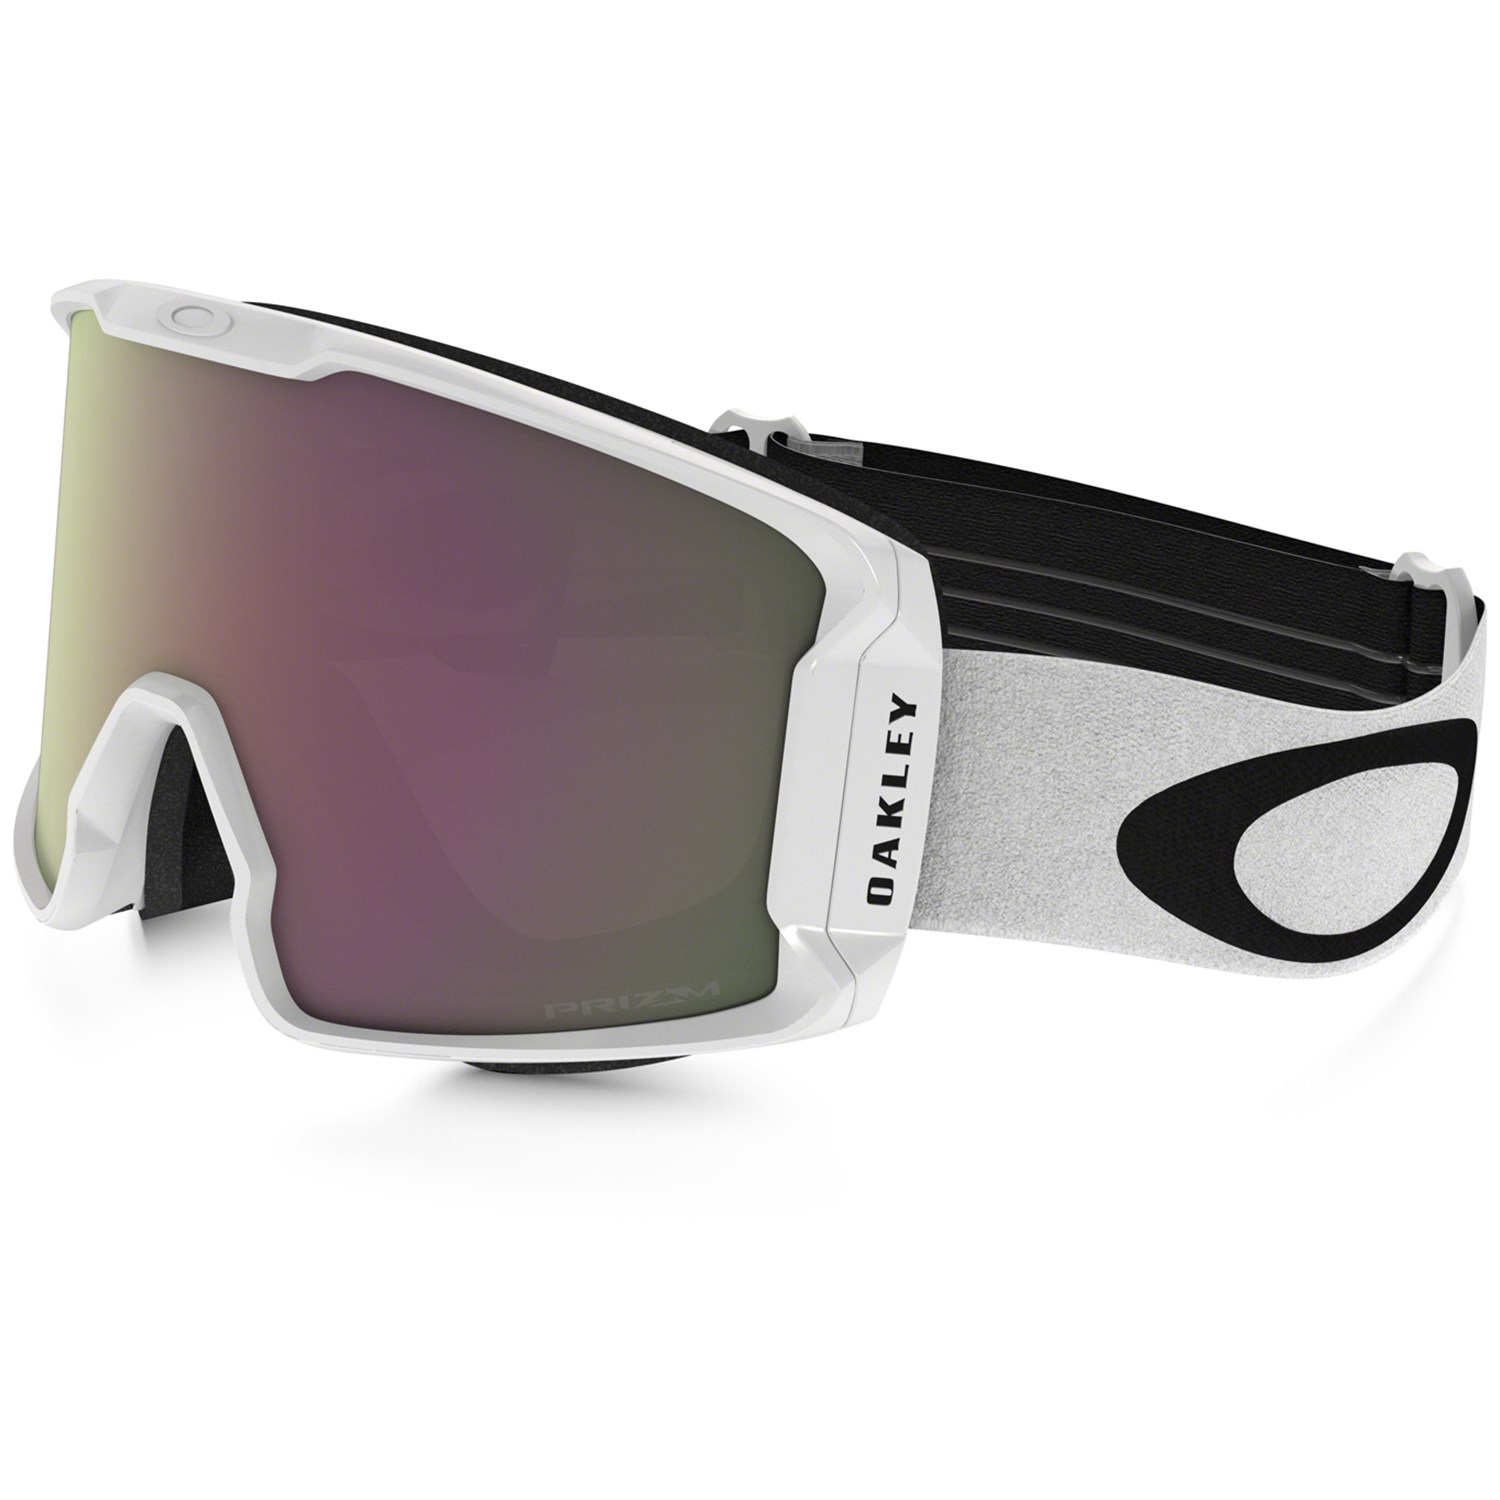 black friday deals on oakley sunglasses yryv  Oakley Line Miner Asian Fit Goggles $13000